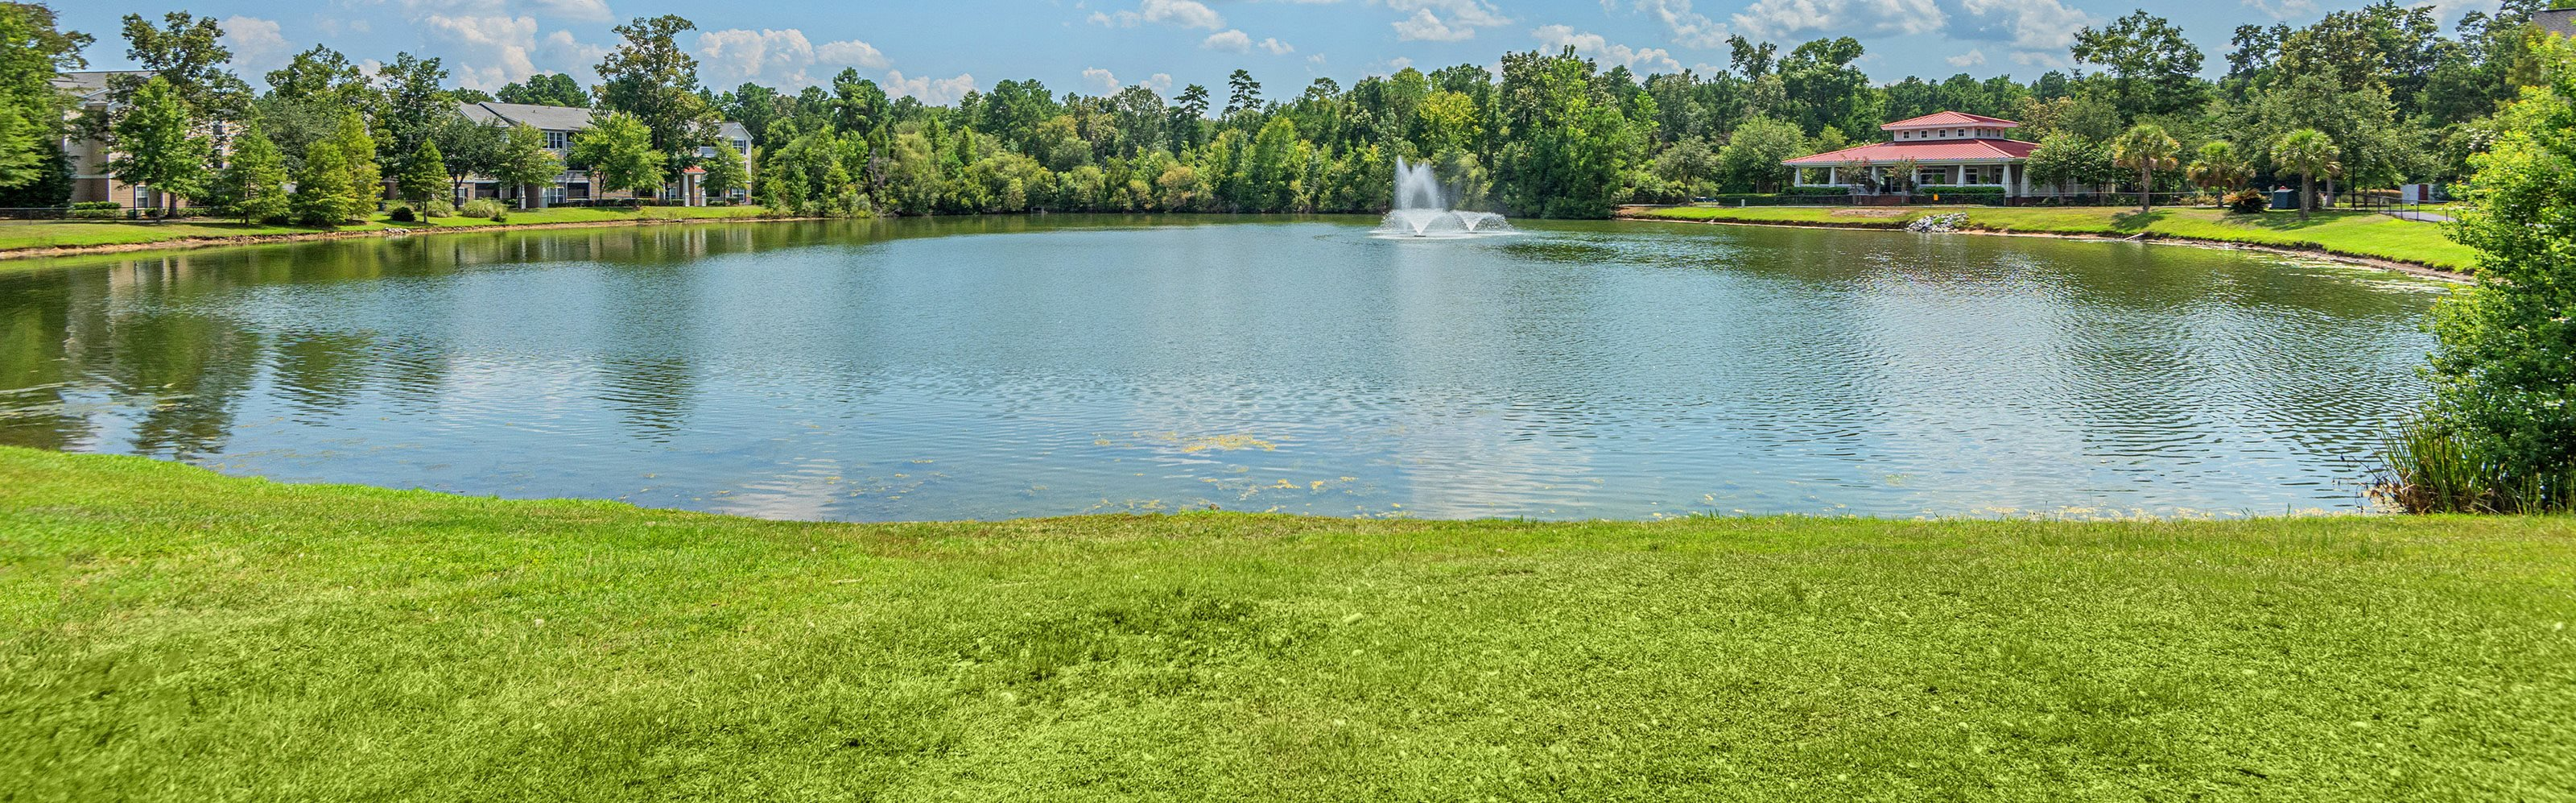 Reserve at Wescott Plantation lake views